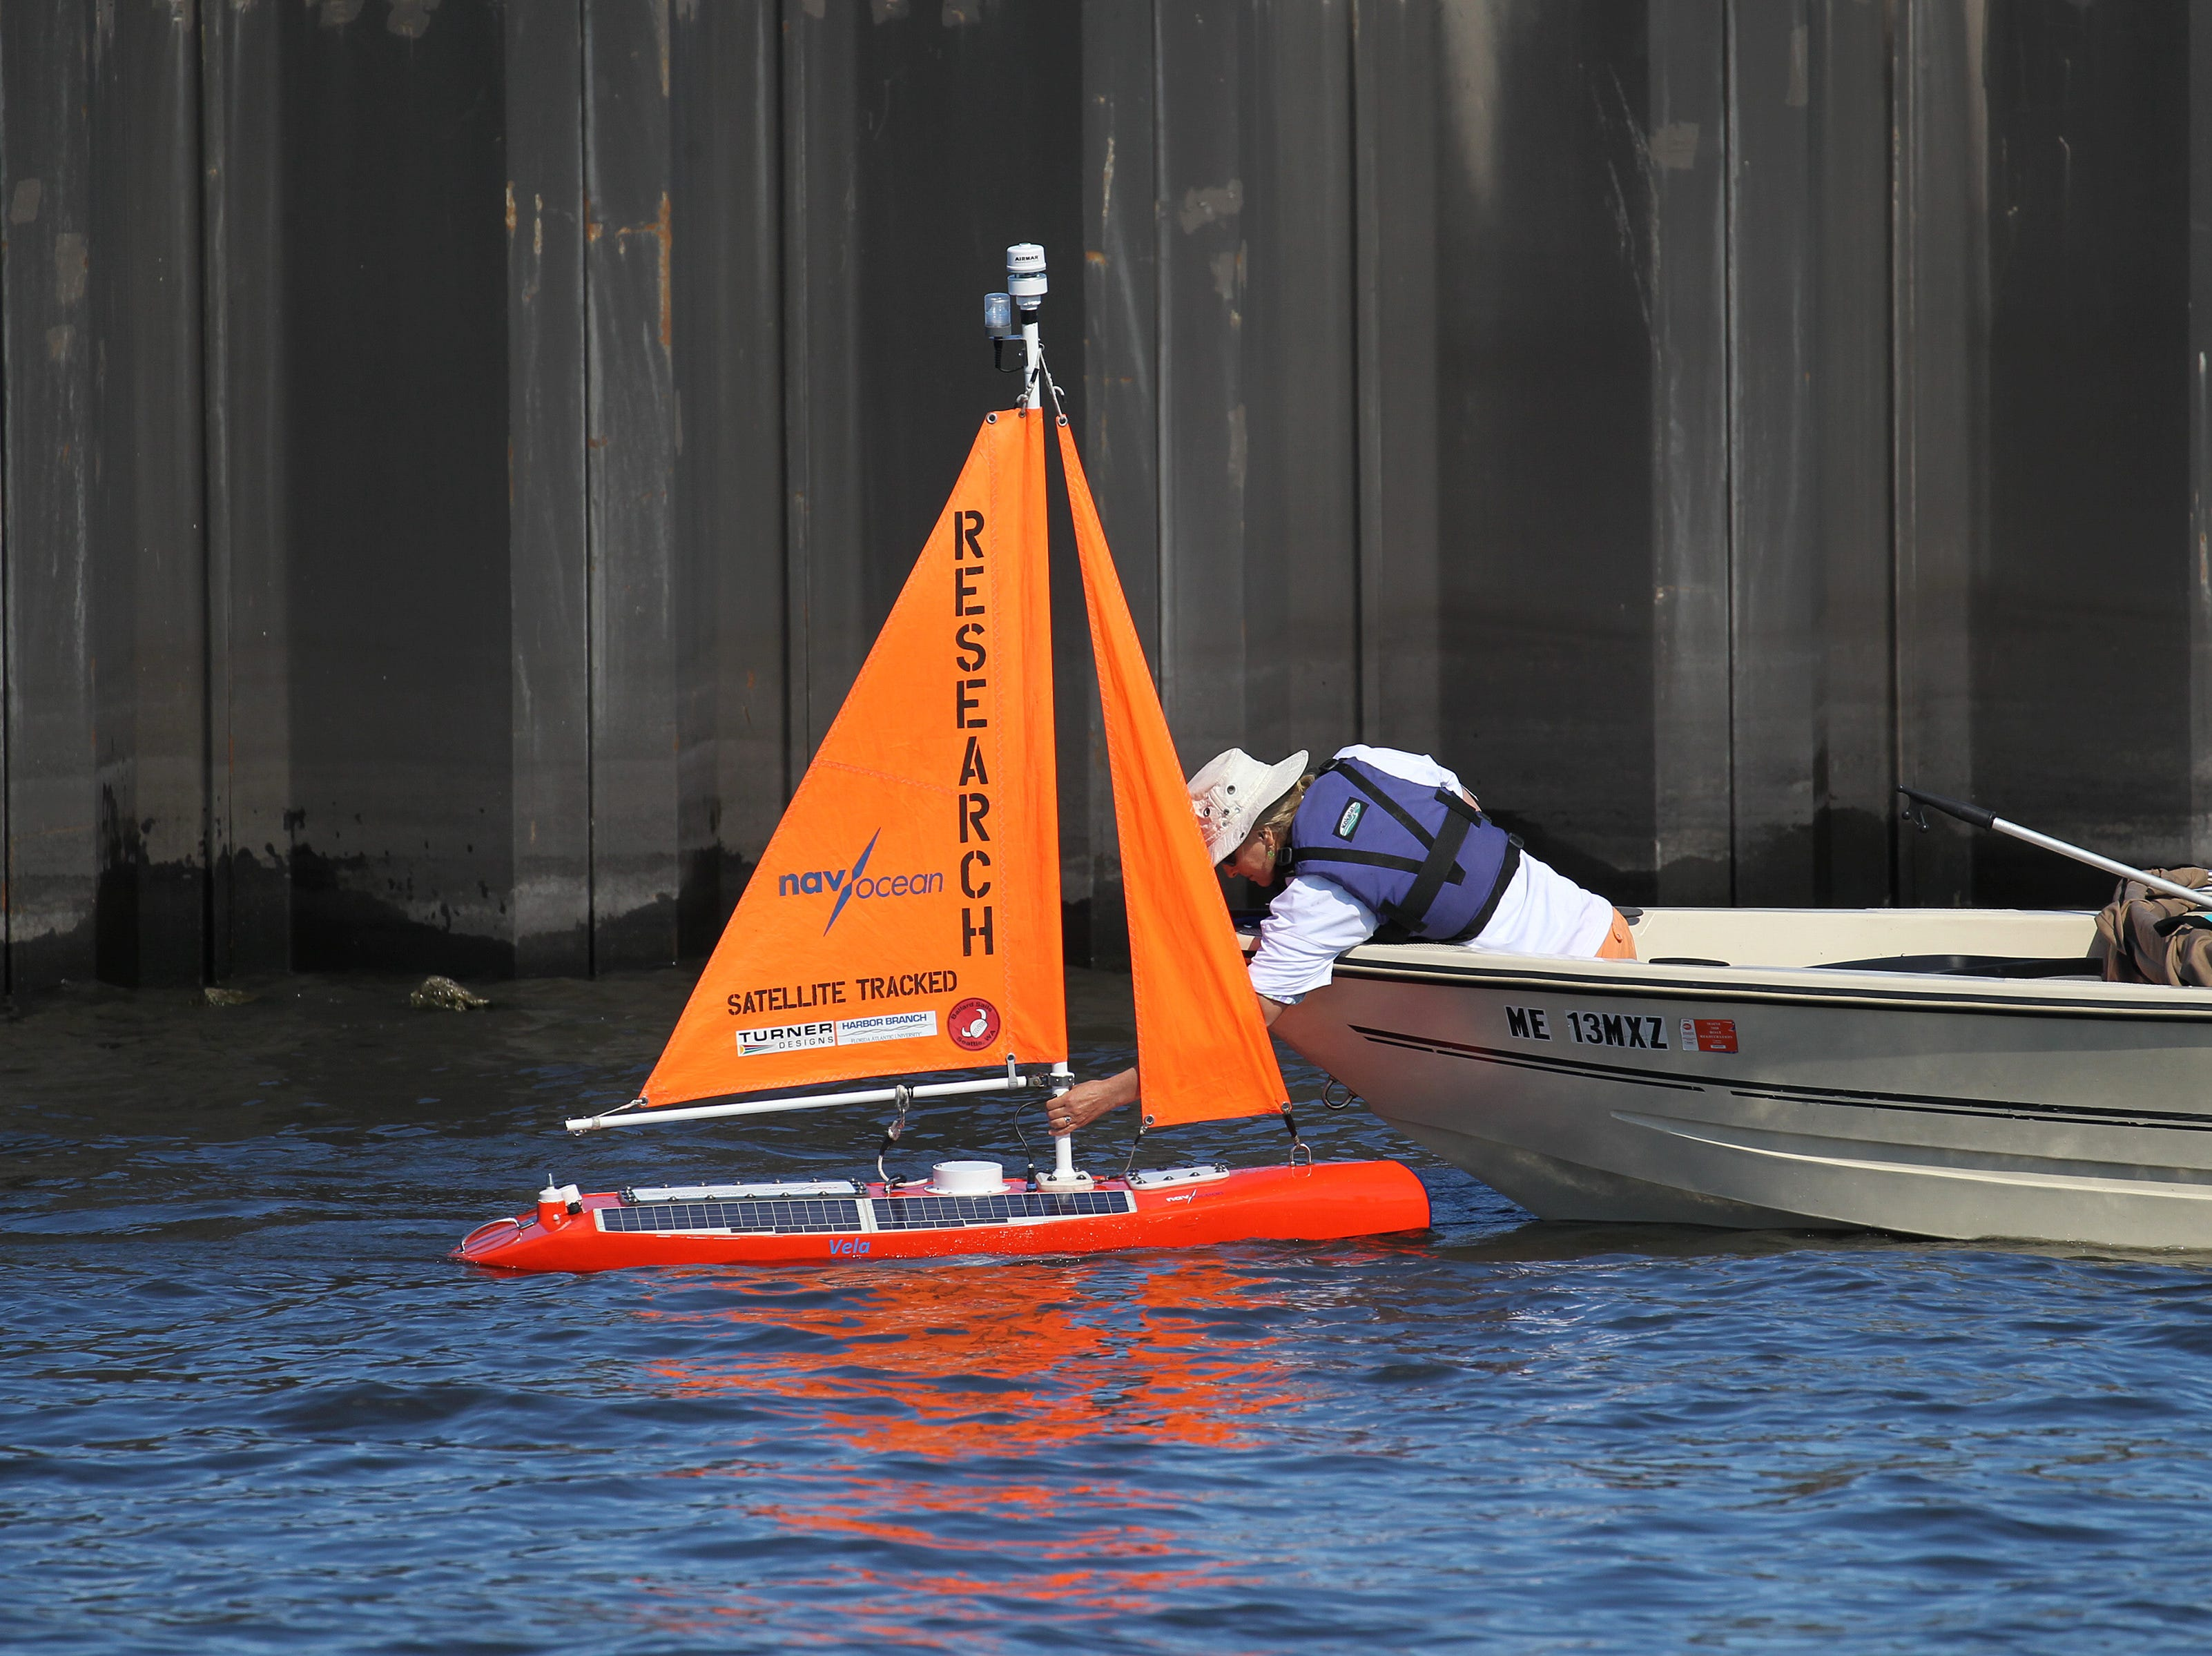 Launching of the Navocean Nav2 autonomous sailboat from the dock of the Pahokee Marina into Lake Okeechobee on Tuesday, Feb. 5, 2019, for a 10-day to two-week mission for search for and track blue-green algae blooms.